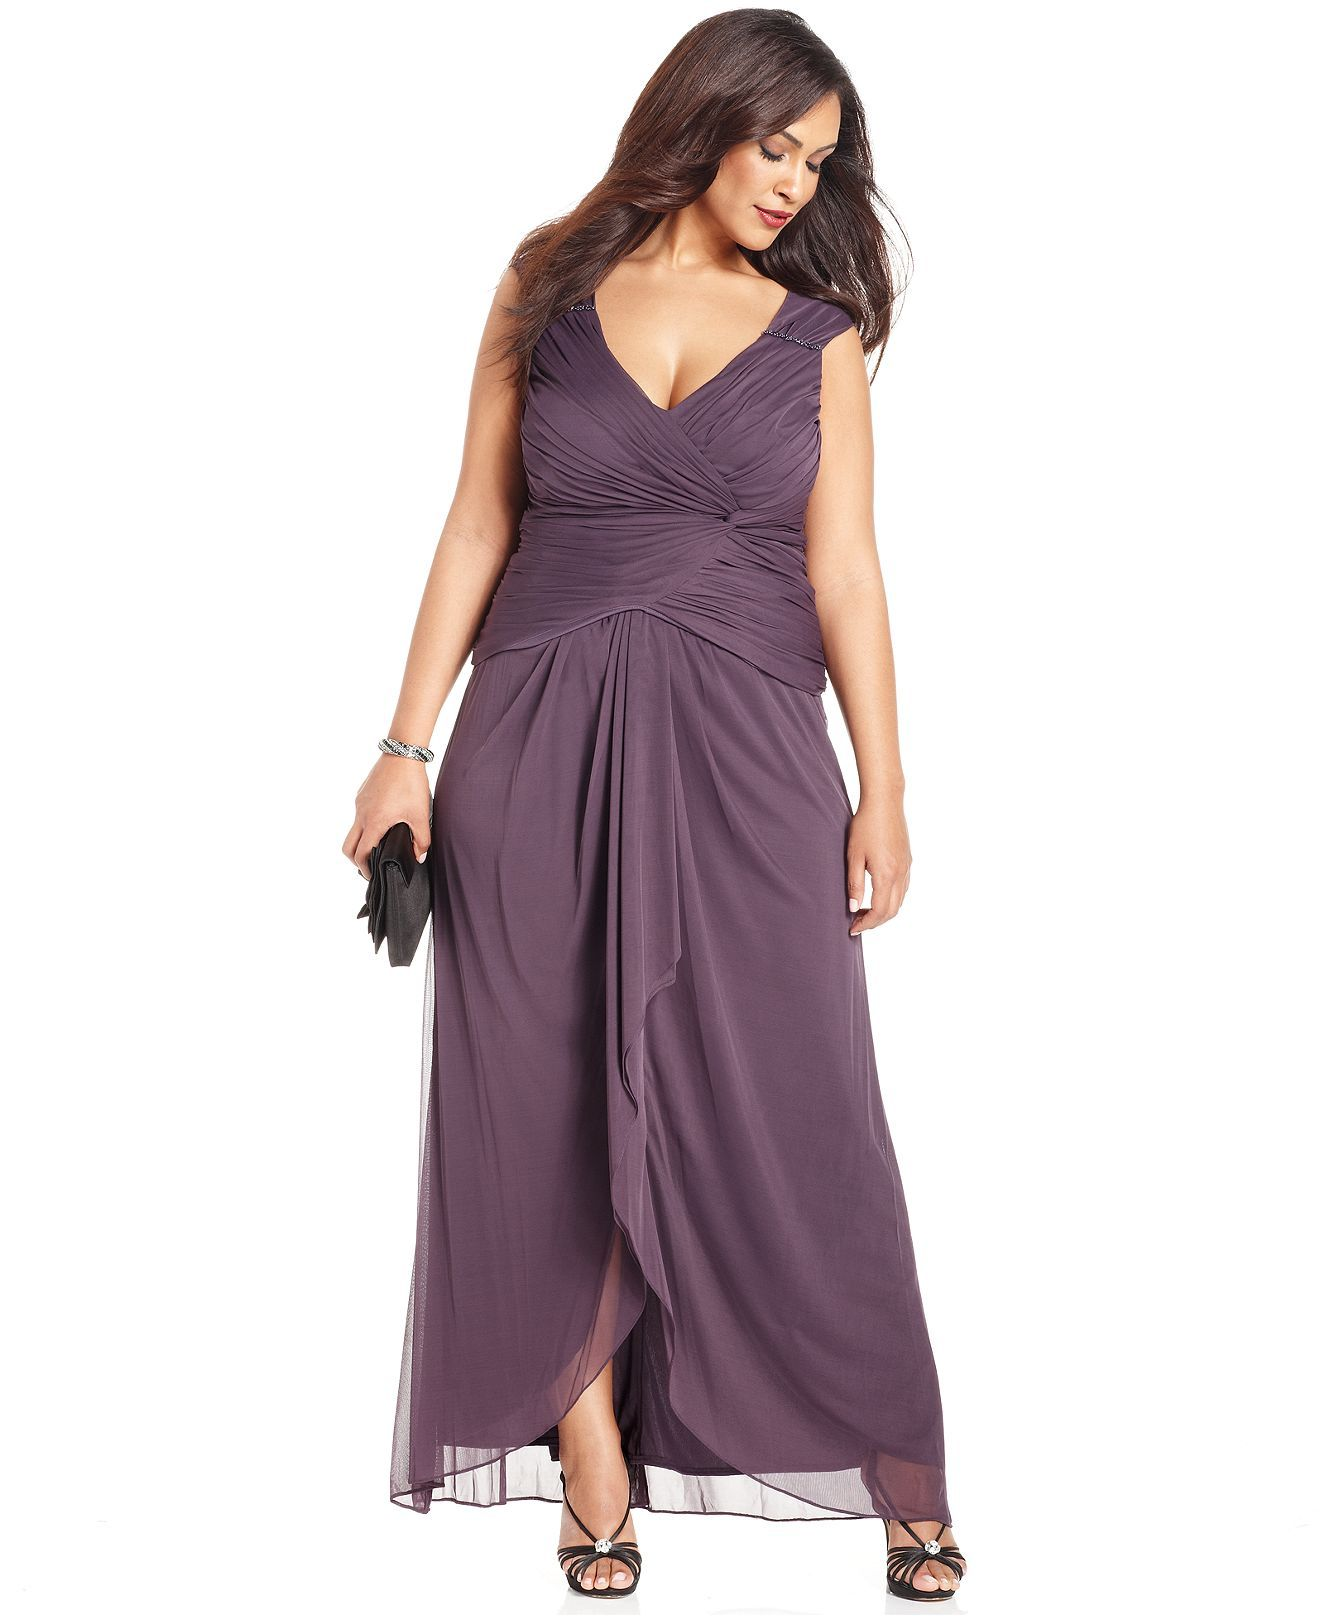 Patra Plus Size Dress, Sleeveless Ruched Gown - Plus Size ...